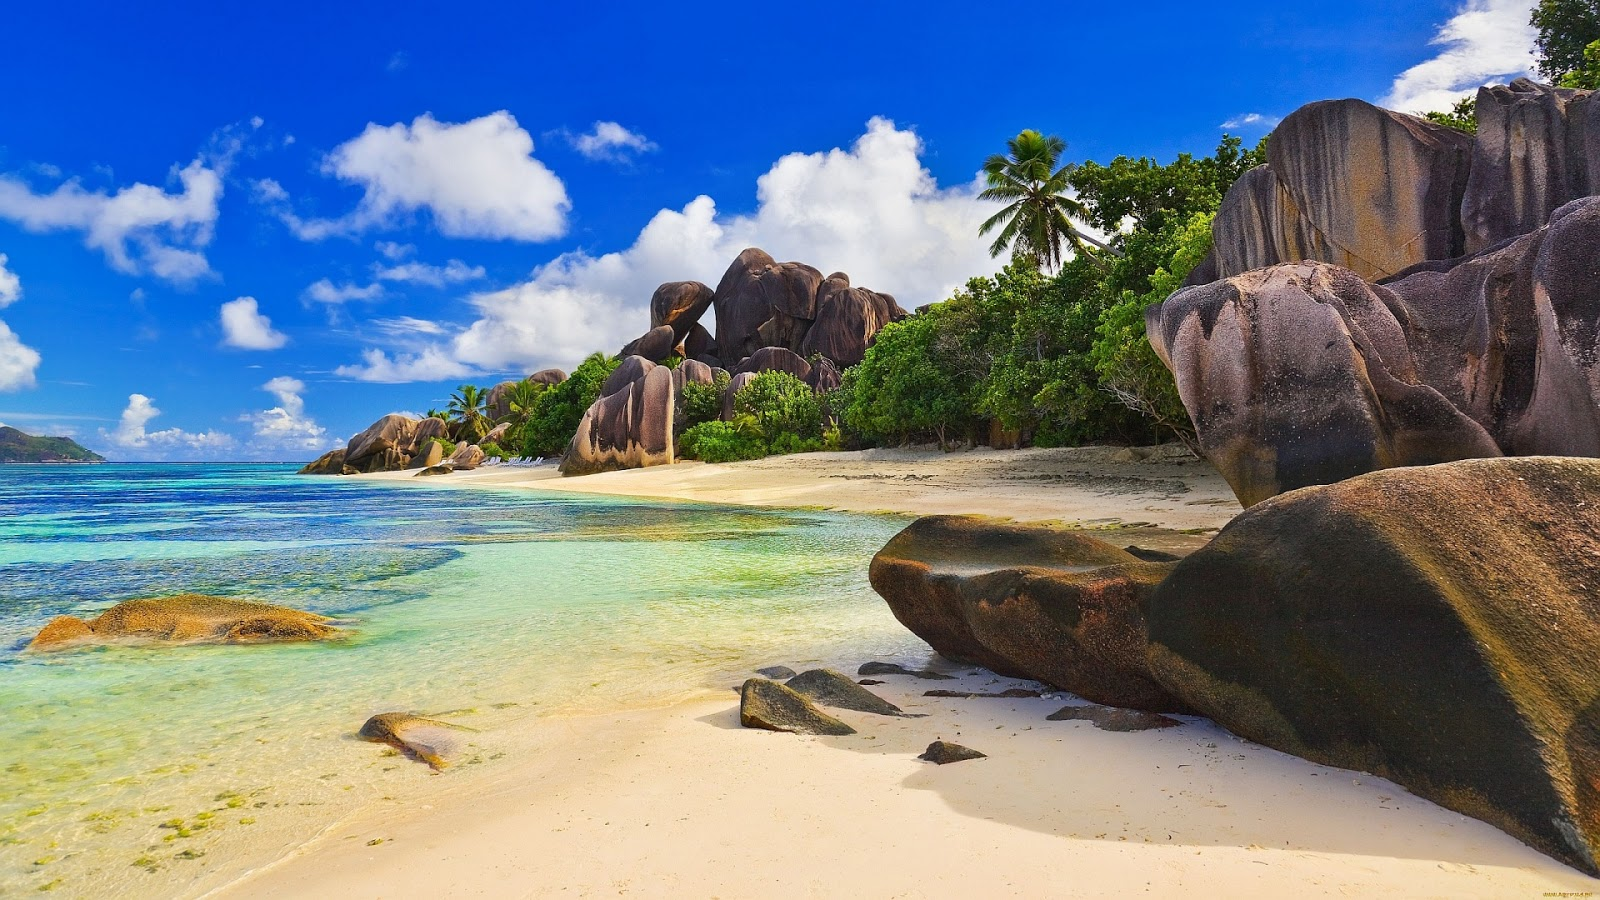 Beautiful Wallpapers: Pictures Of Beautiful Beaches In The ... - photo#27